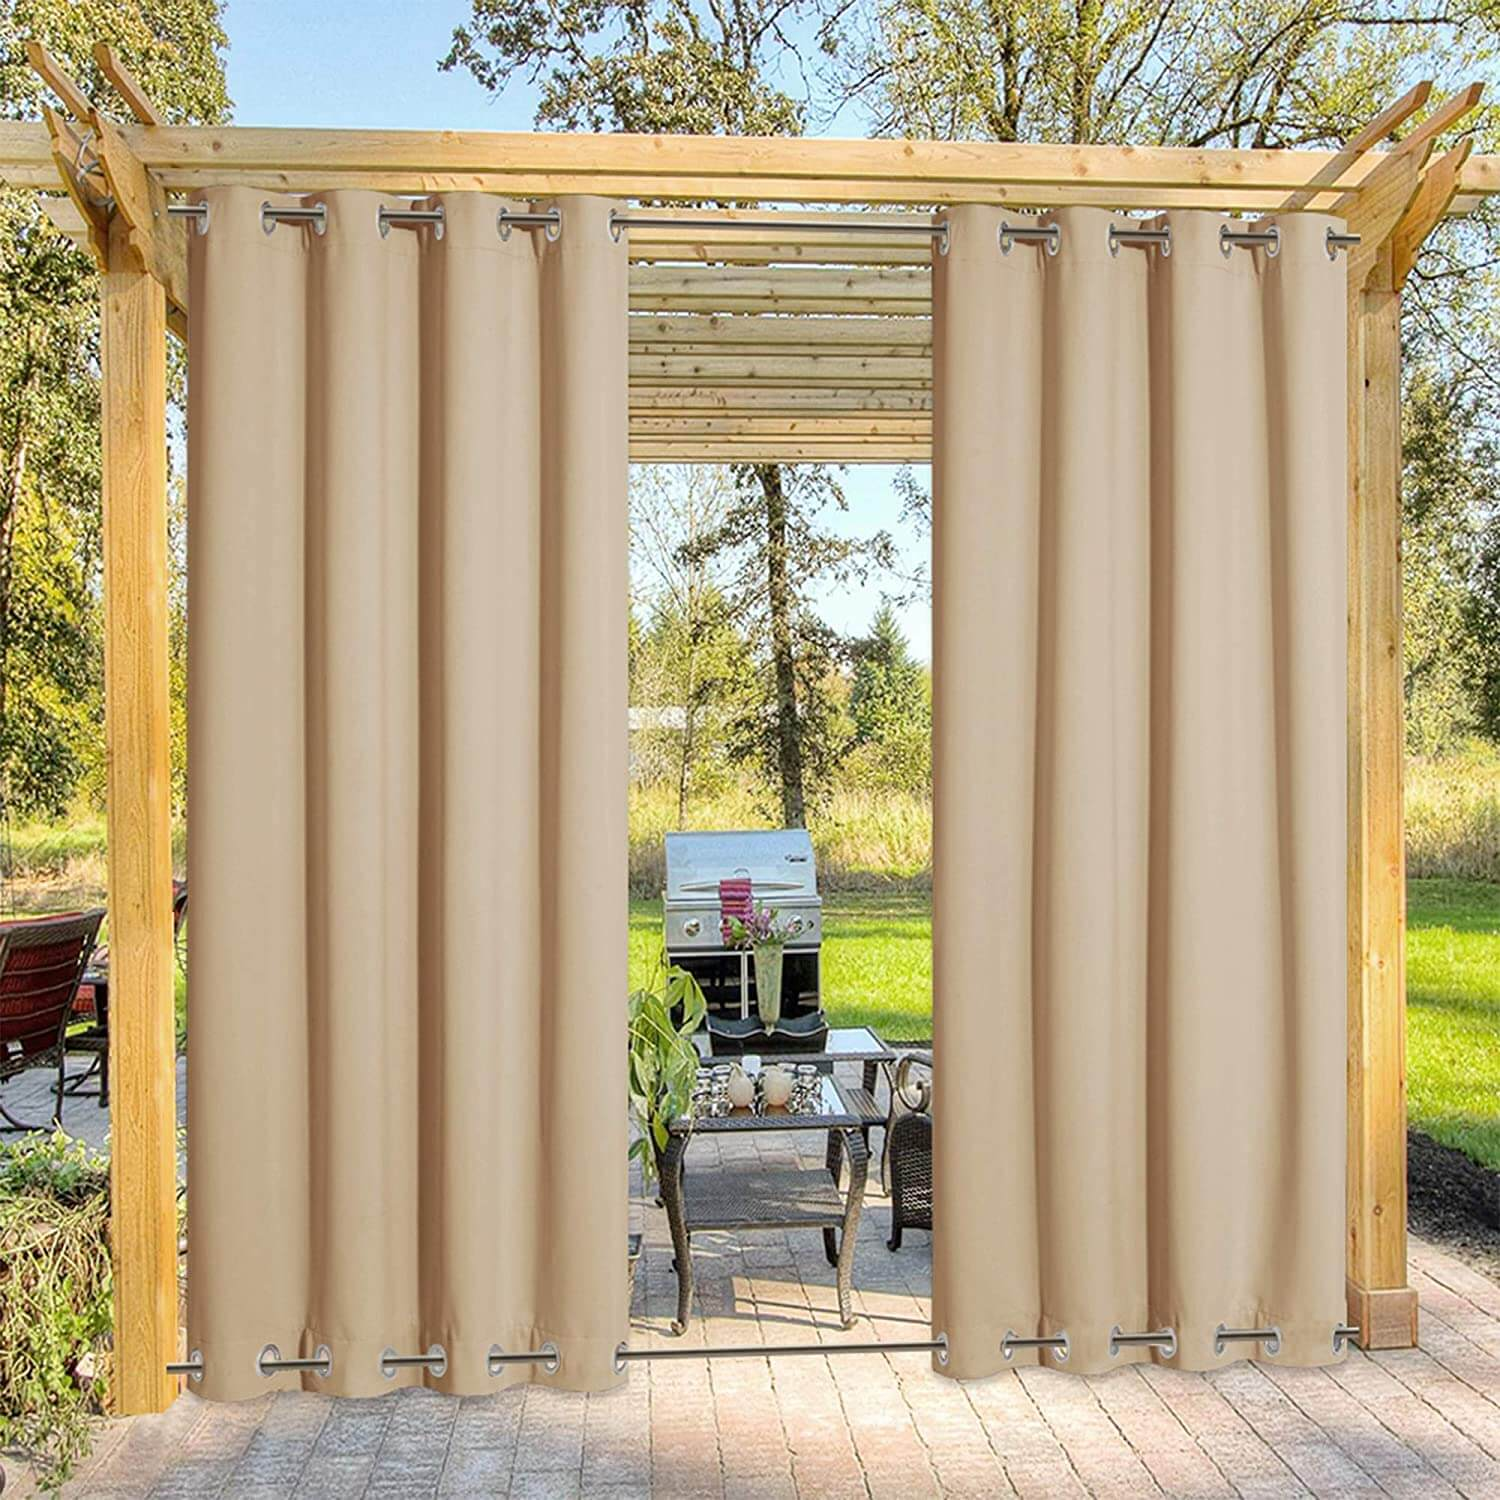 SOFT GLOW OUTDOOR CURTAINS FOR PATIO